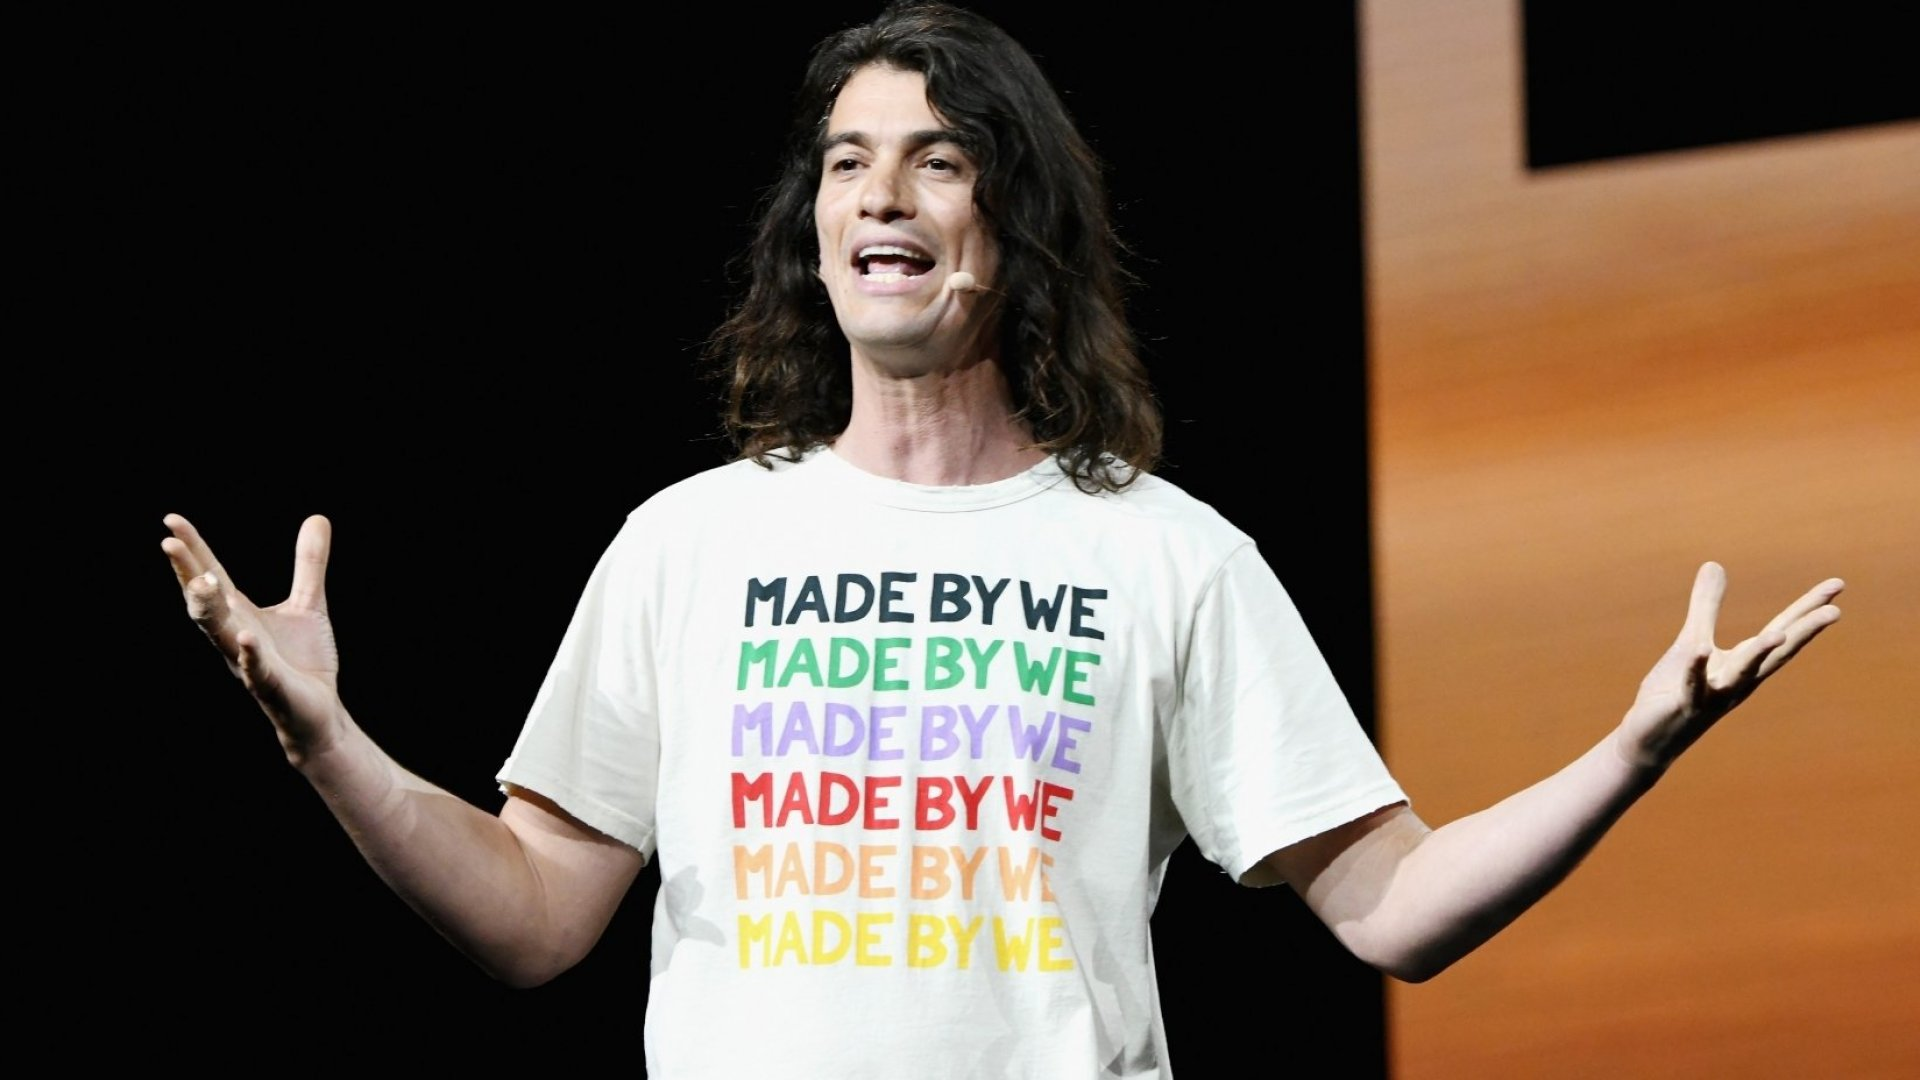 WeWork CEO Adam Neumann Might Get Pushed Out Over This One Critical Factor That Could Trip Any Entrepreneur